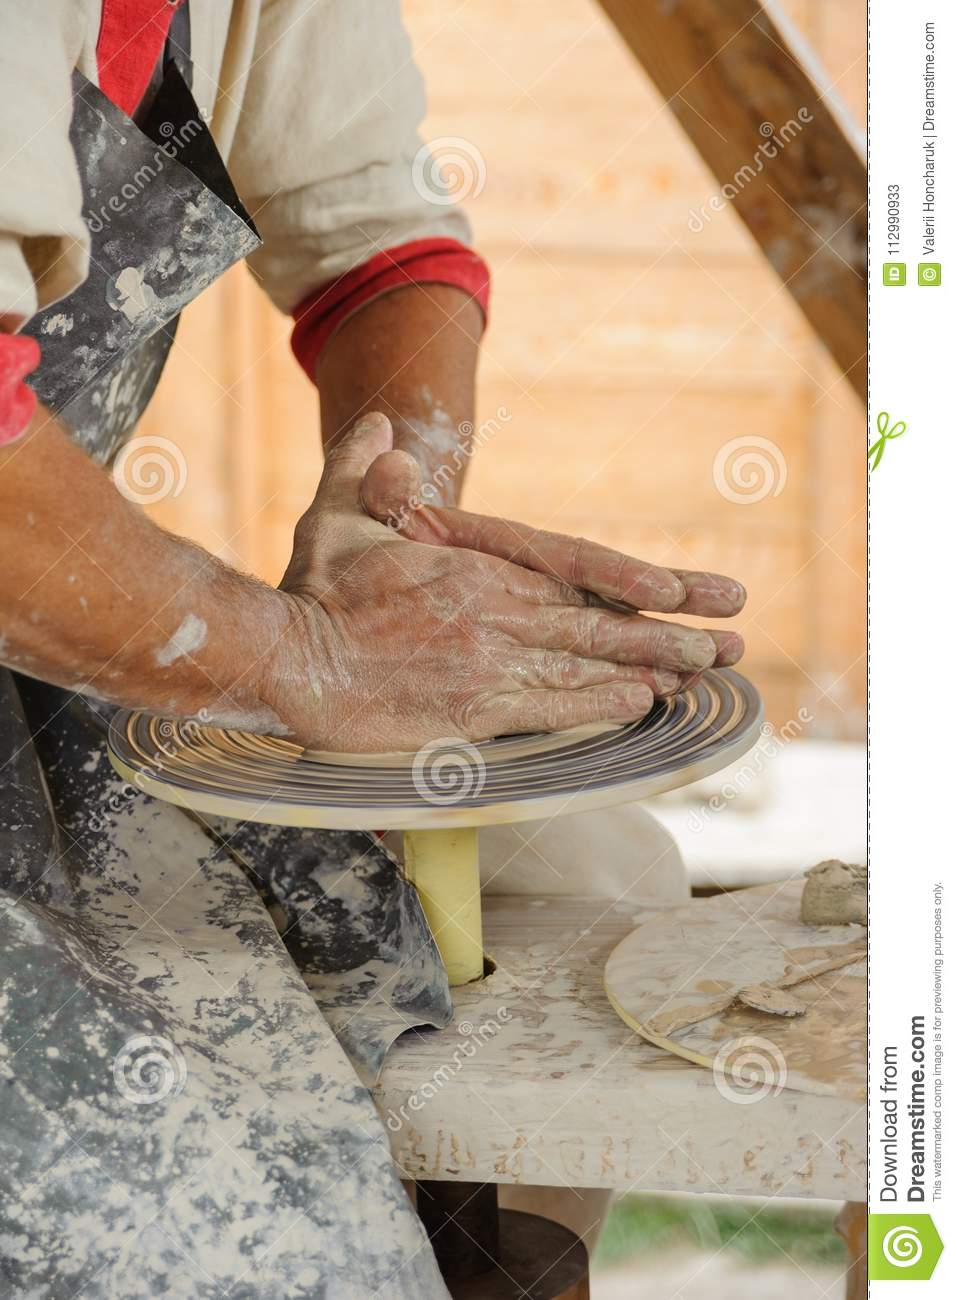 Ceramics - hands of the master makes a clay pitcher on the Potter wheel, side view